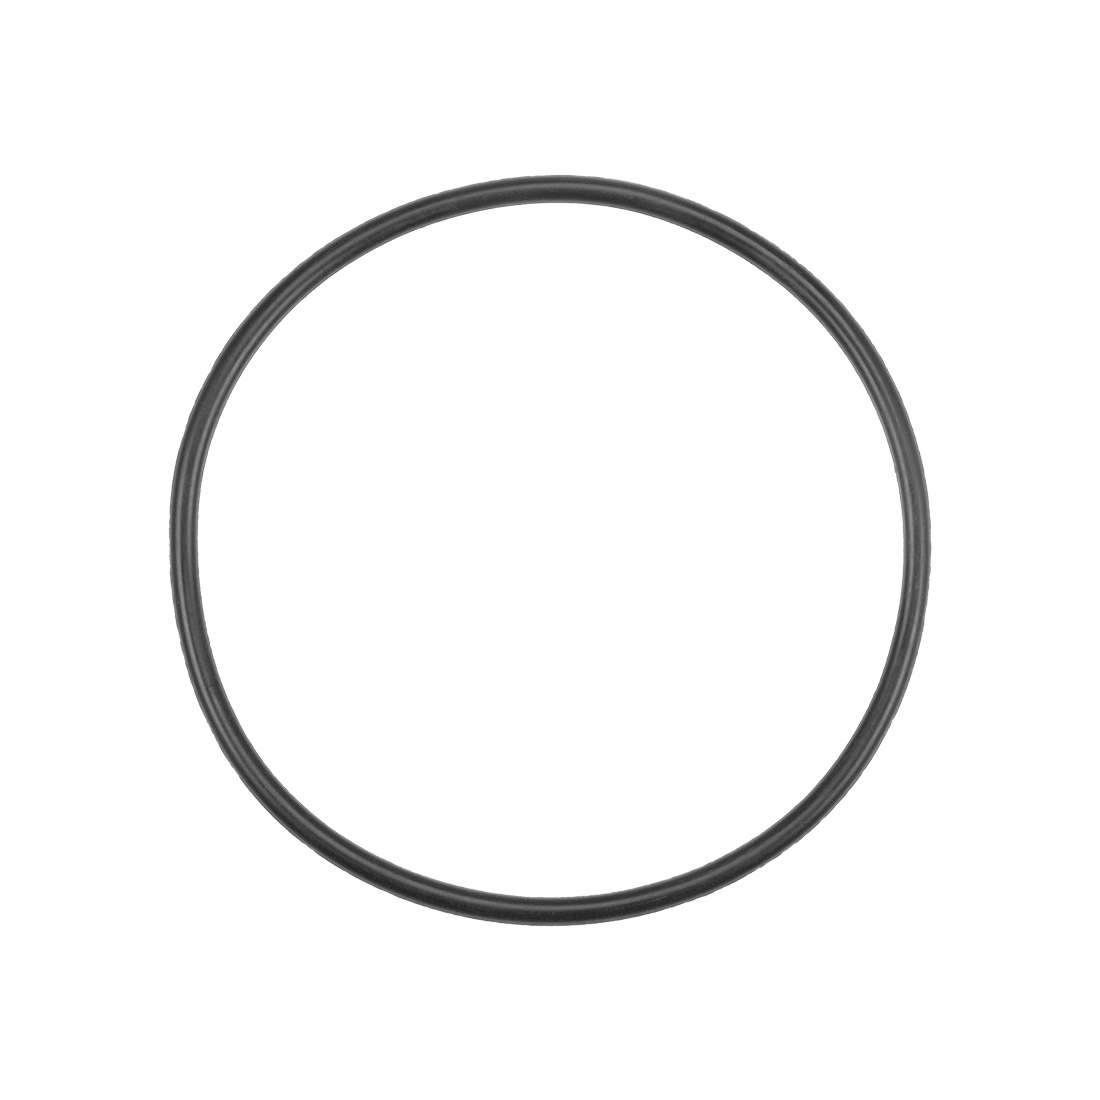 O-Rings Nitrile Rubber 67mm x 72.3mm x 2.65mm Round Seal Gasket